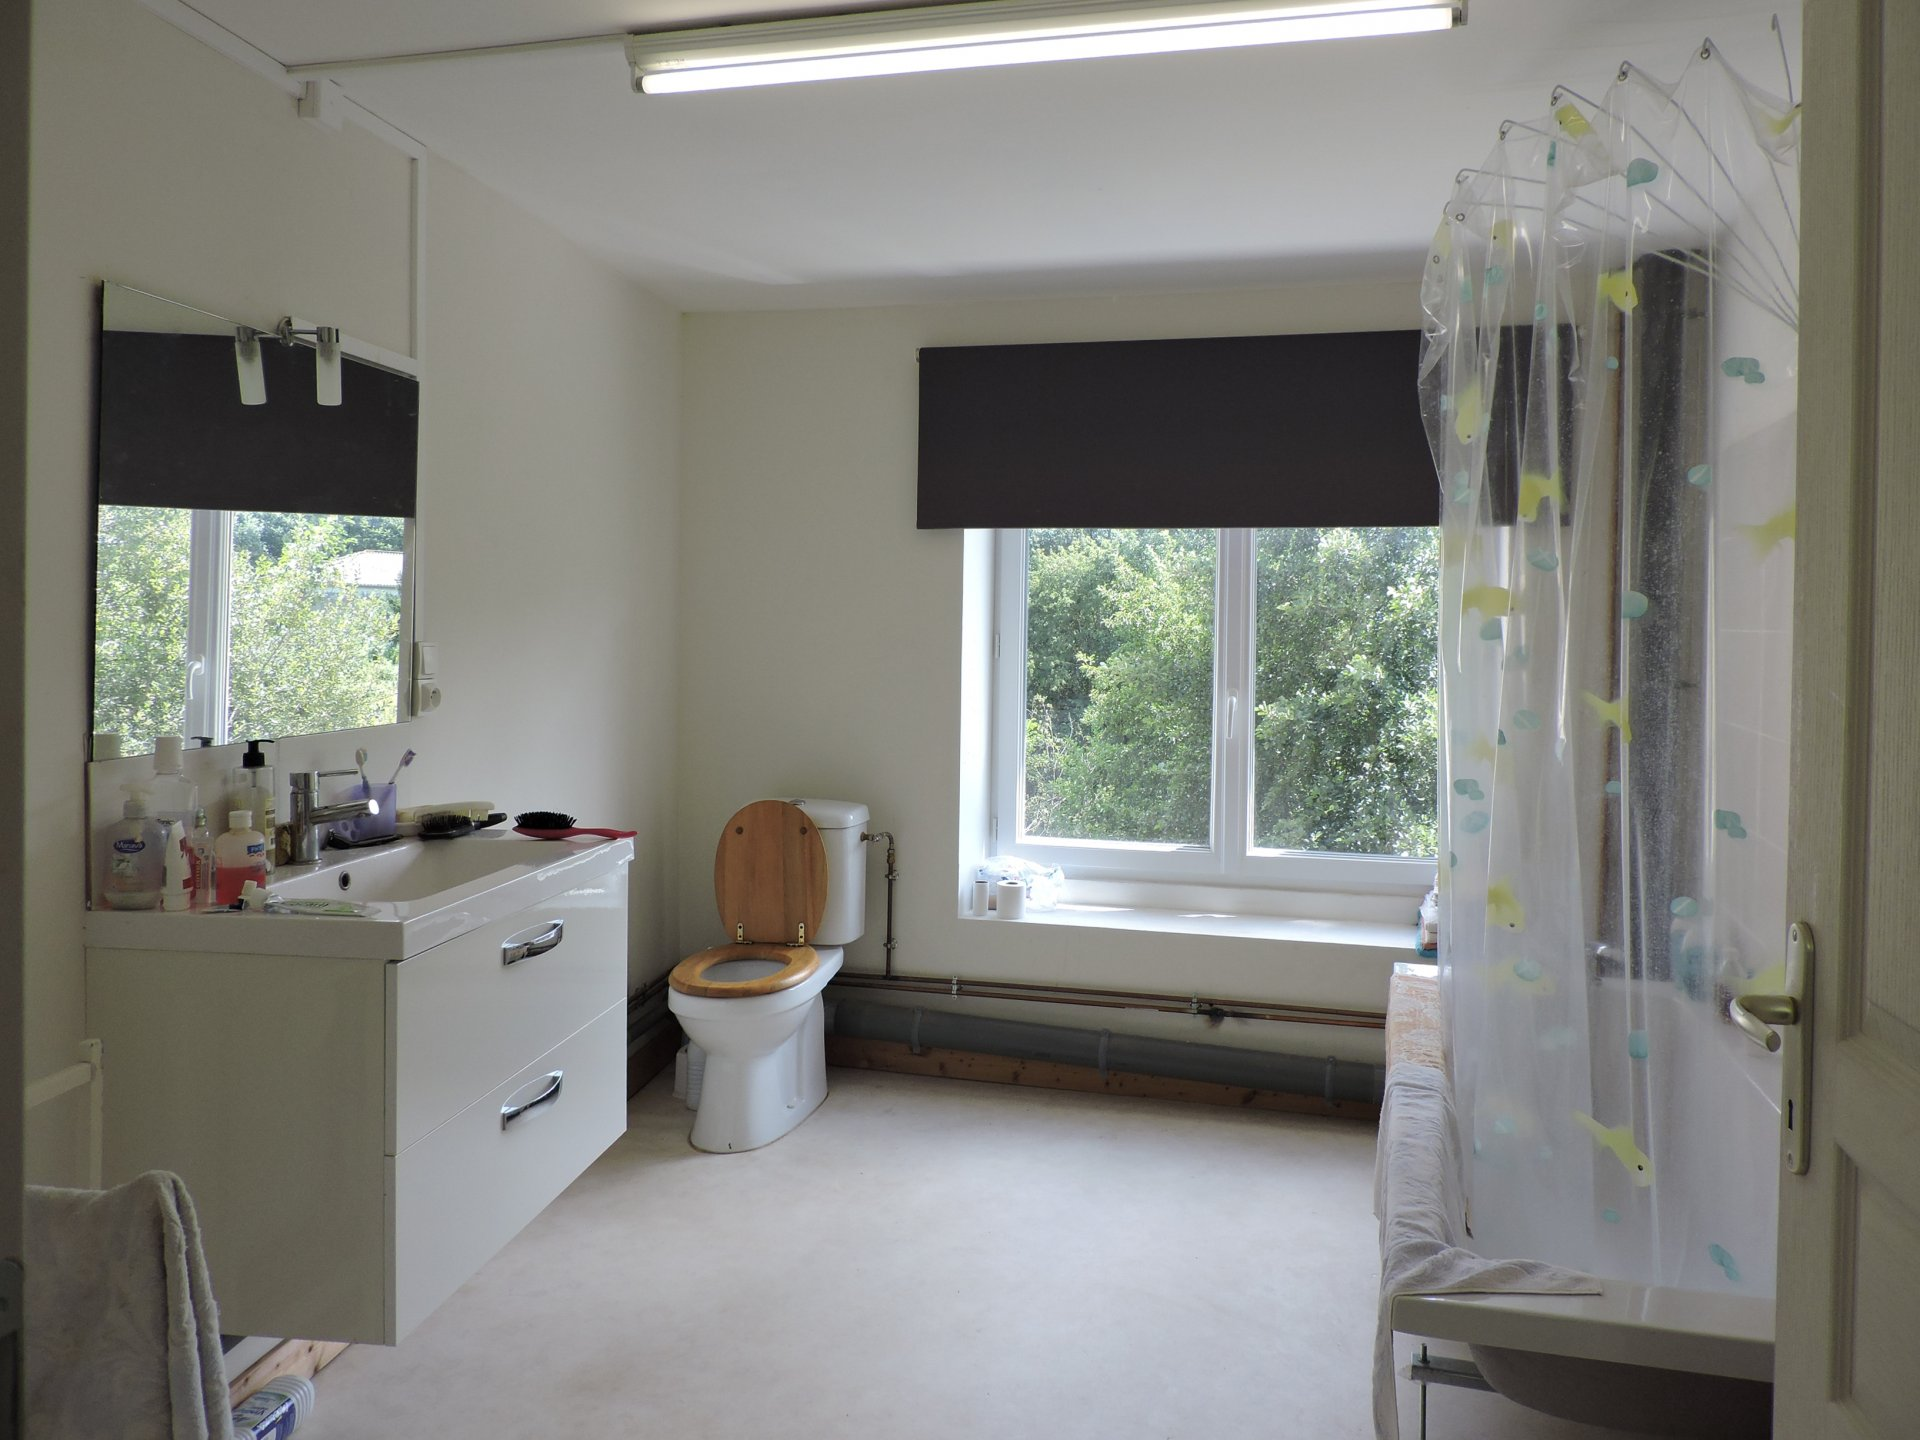 Right wing: Bathroom/wc of the 1st floor flat